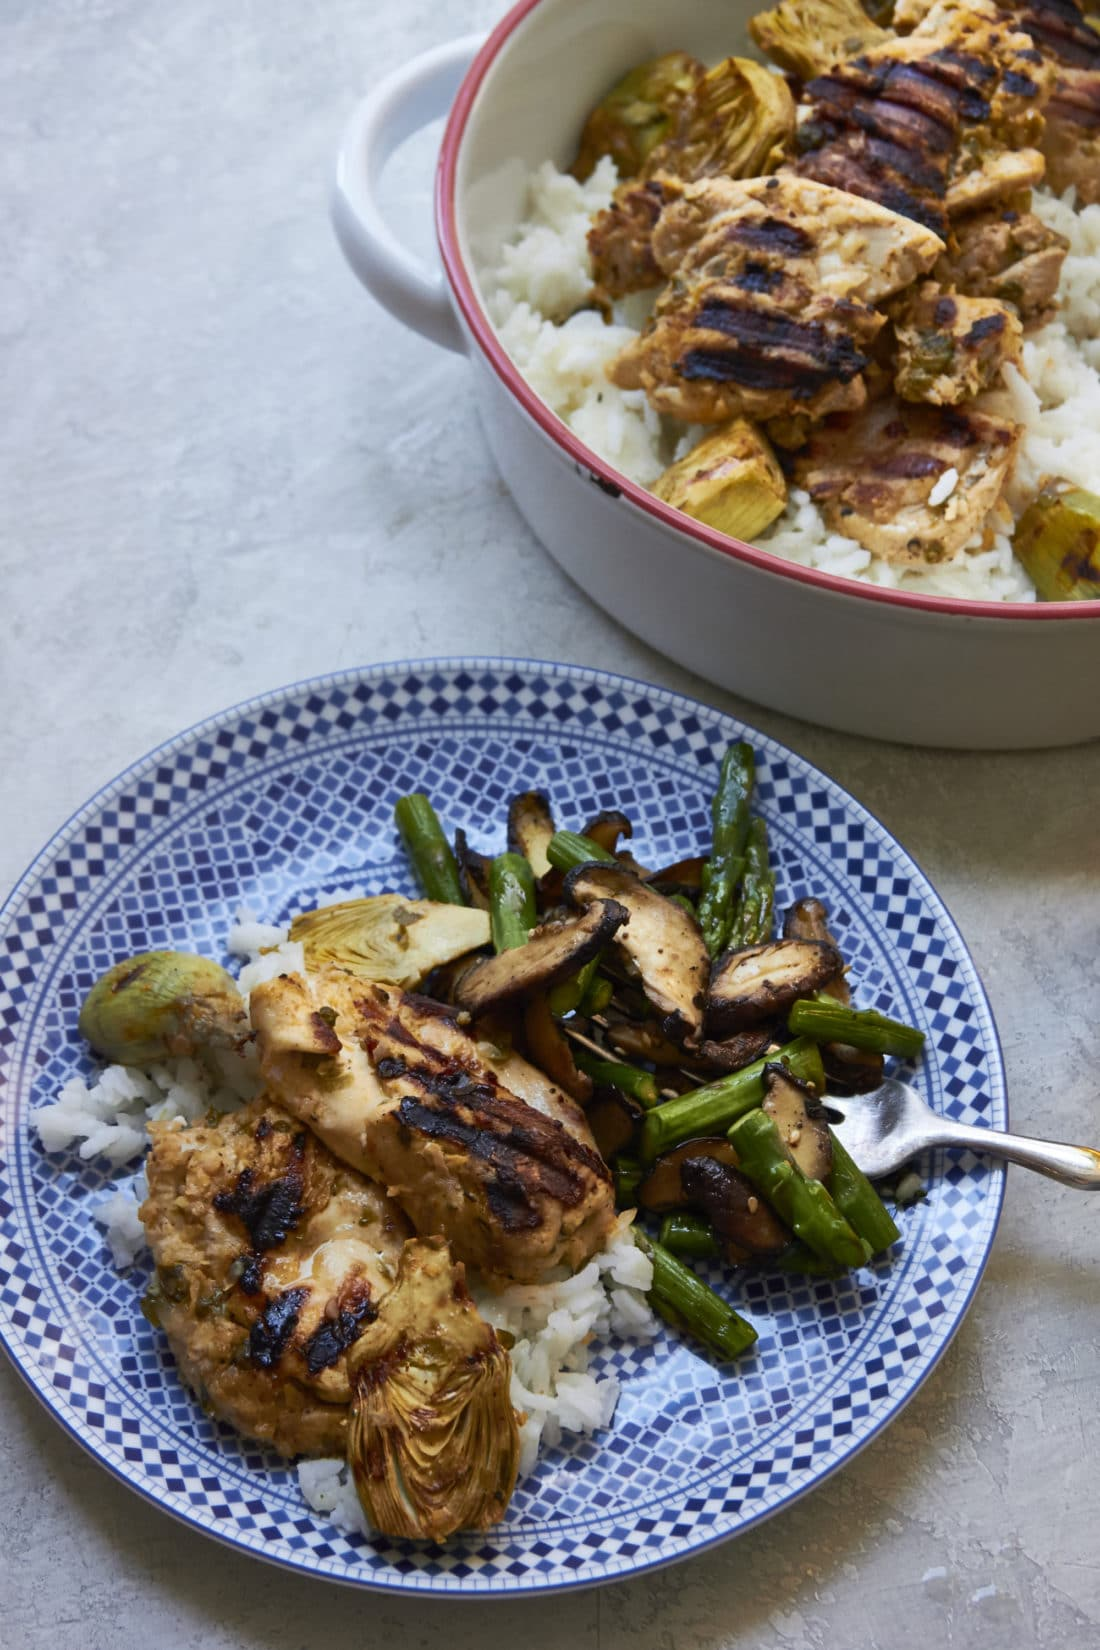 Grilled Lemony Chicken and Baby Artichokes